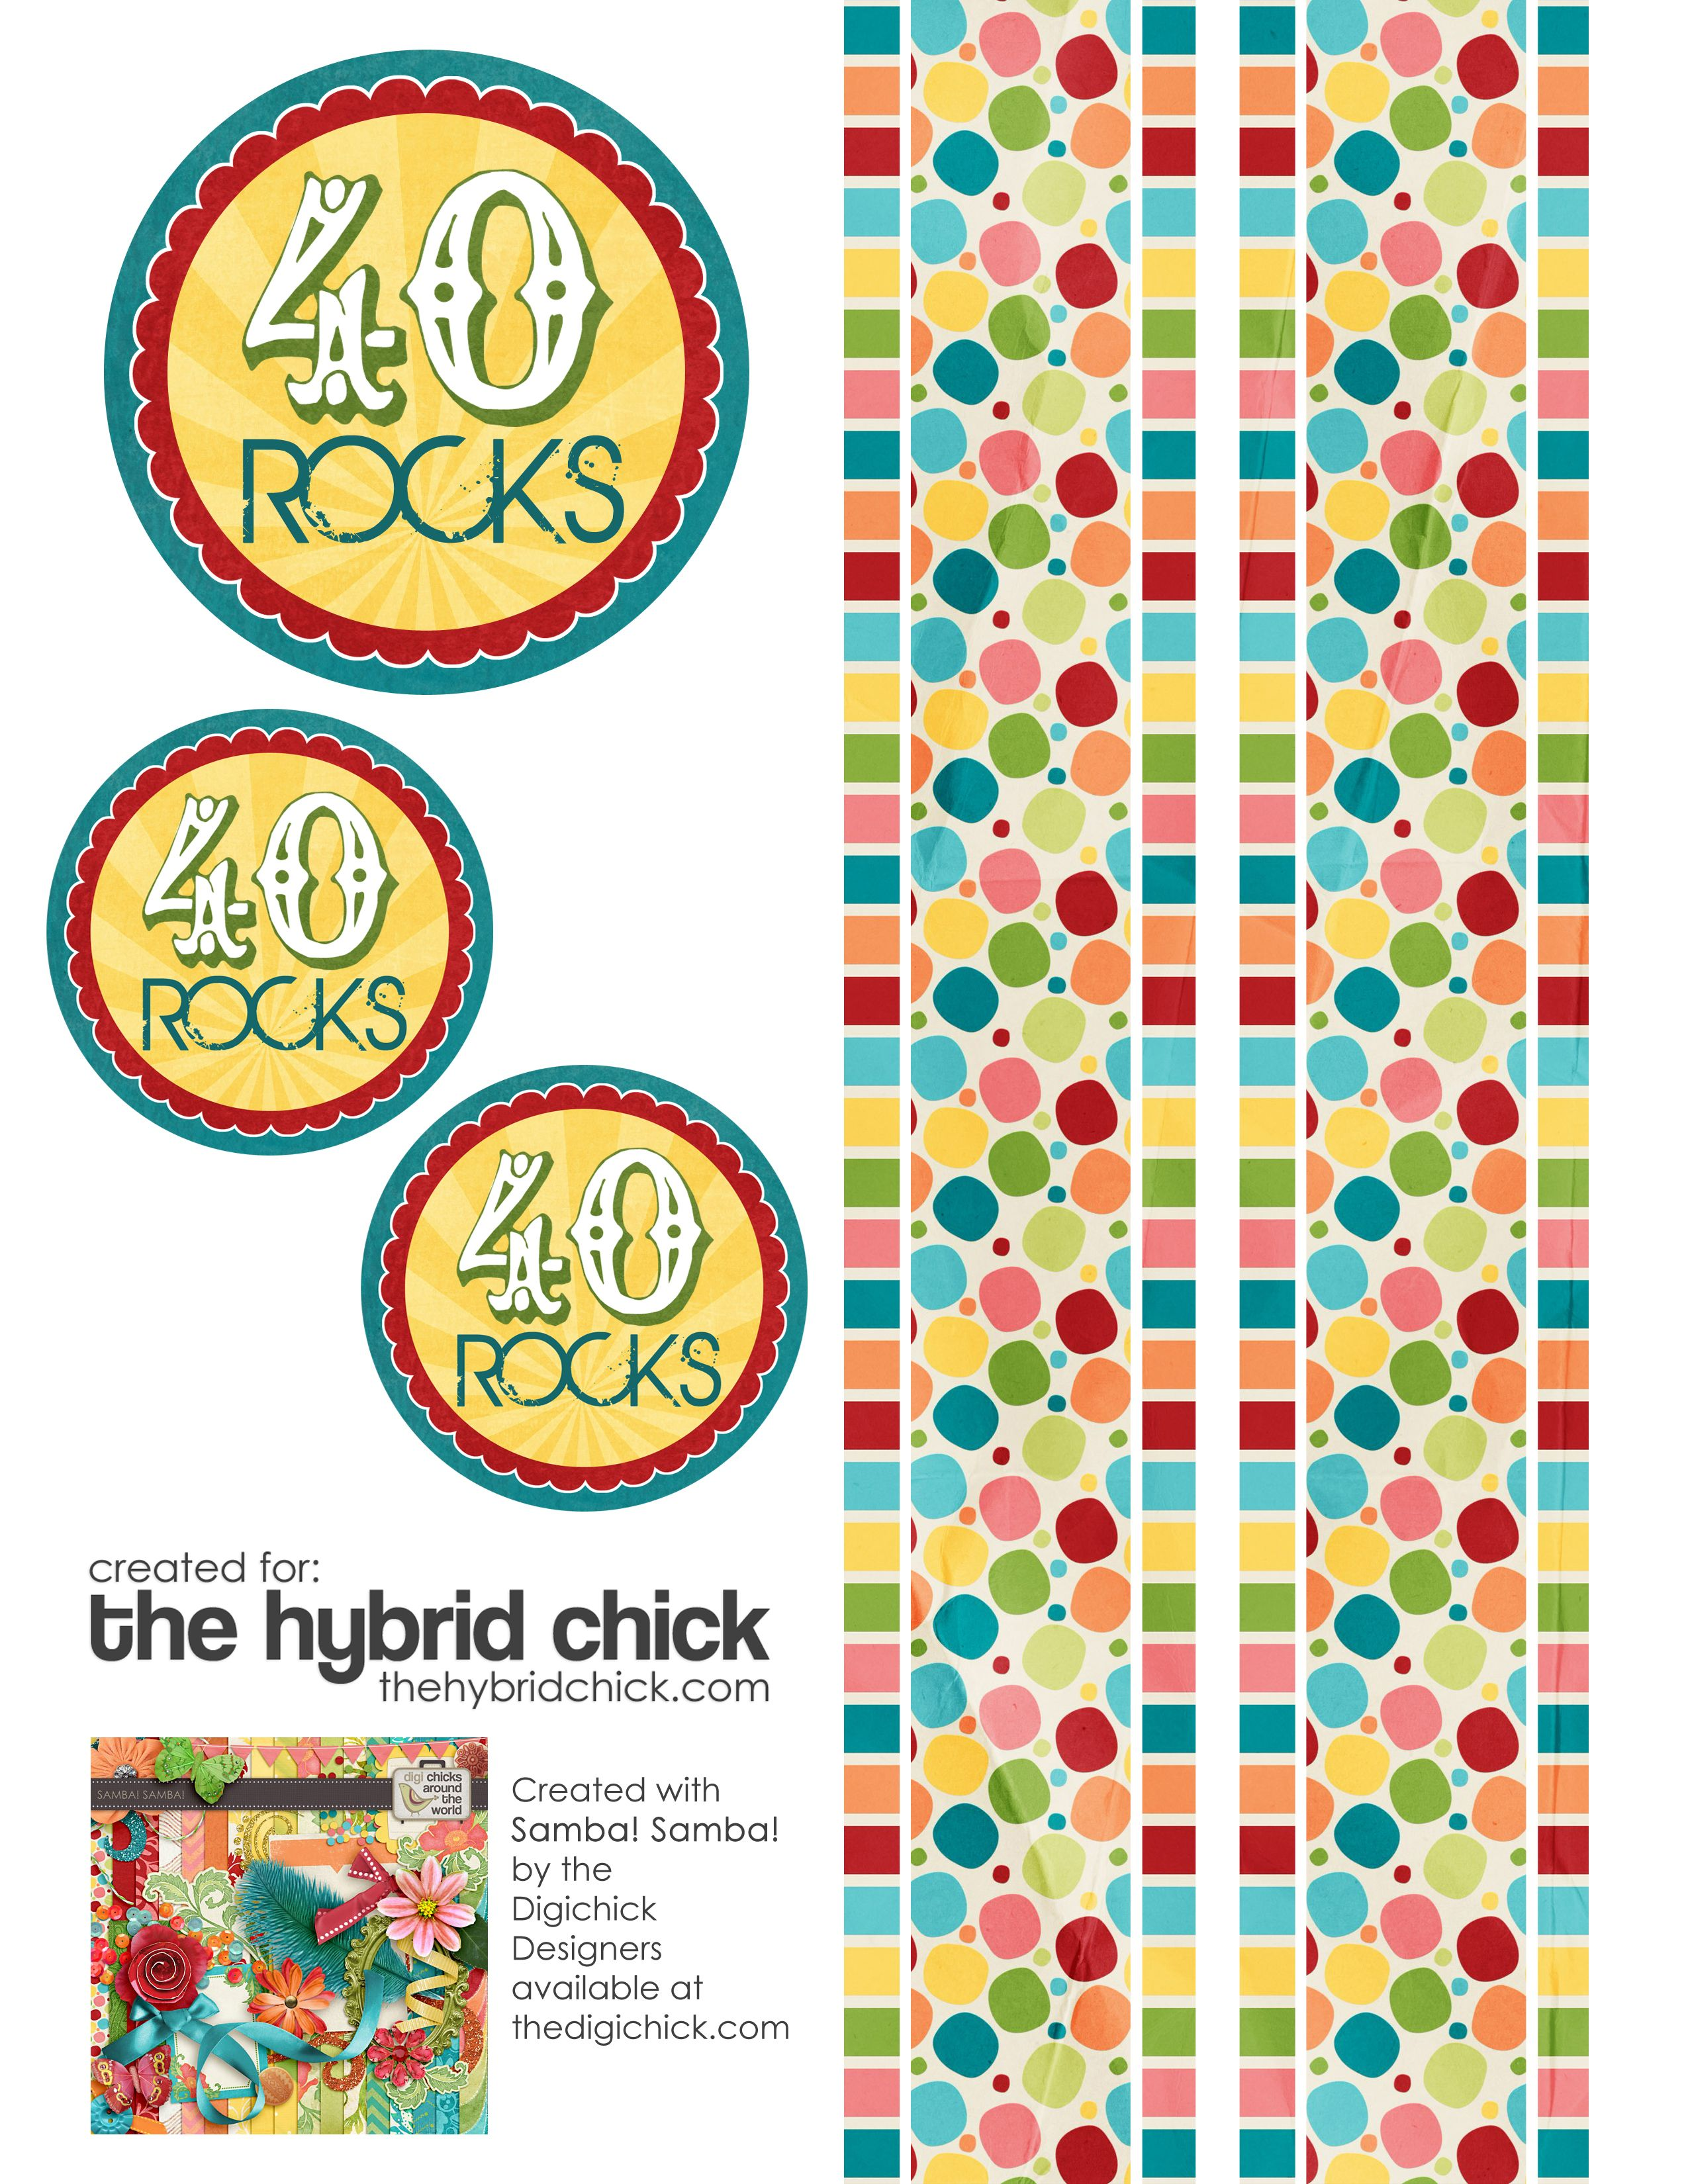 40 Rocks Birthday Gift With Free Printable 40th Birthday Centerpieces 40th Birthday Parties 40th Bday Ideas